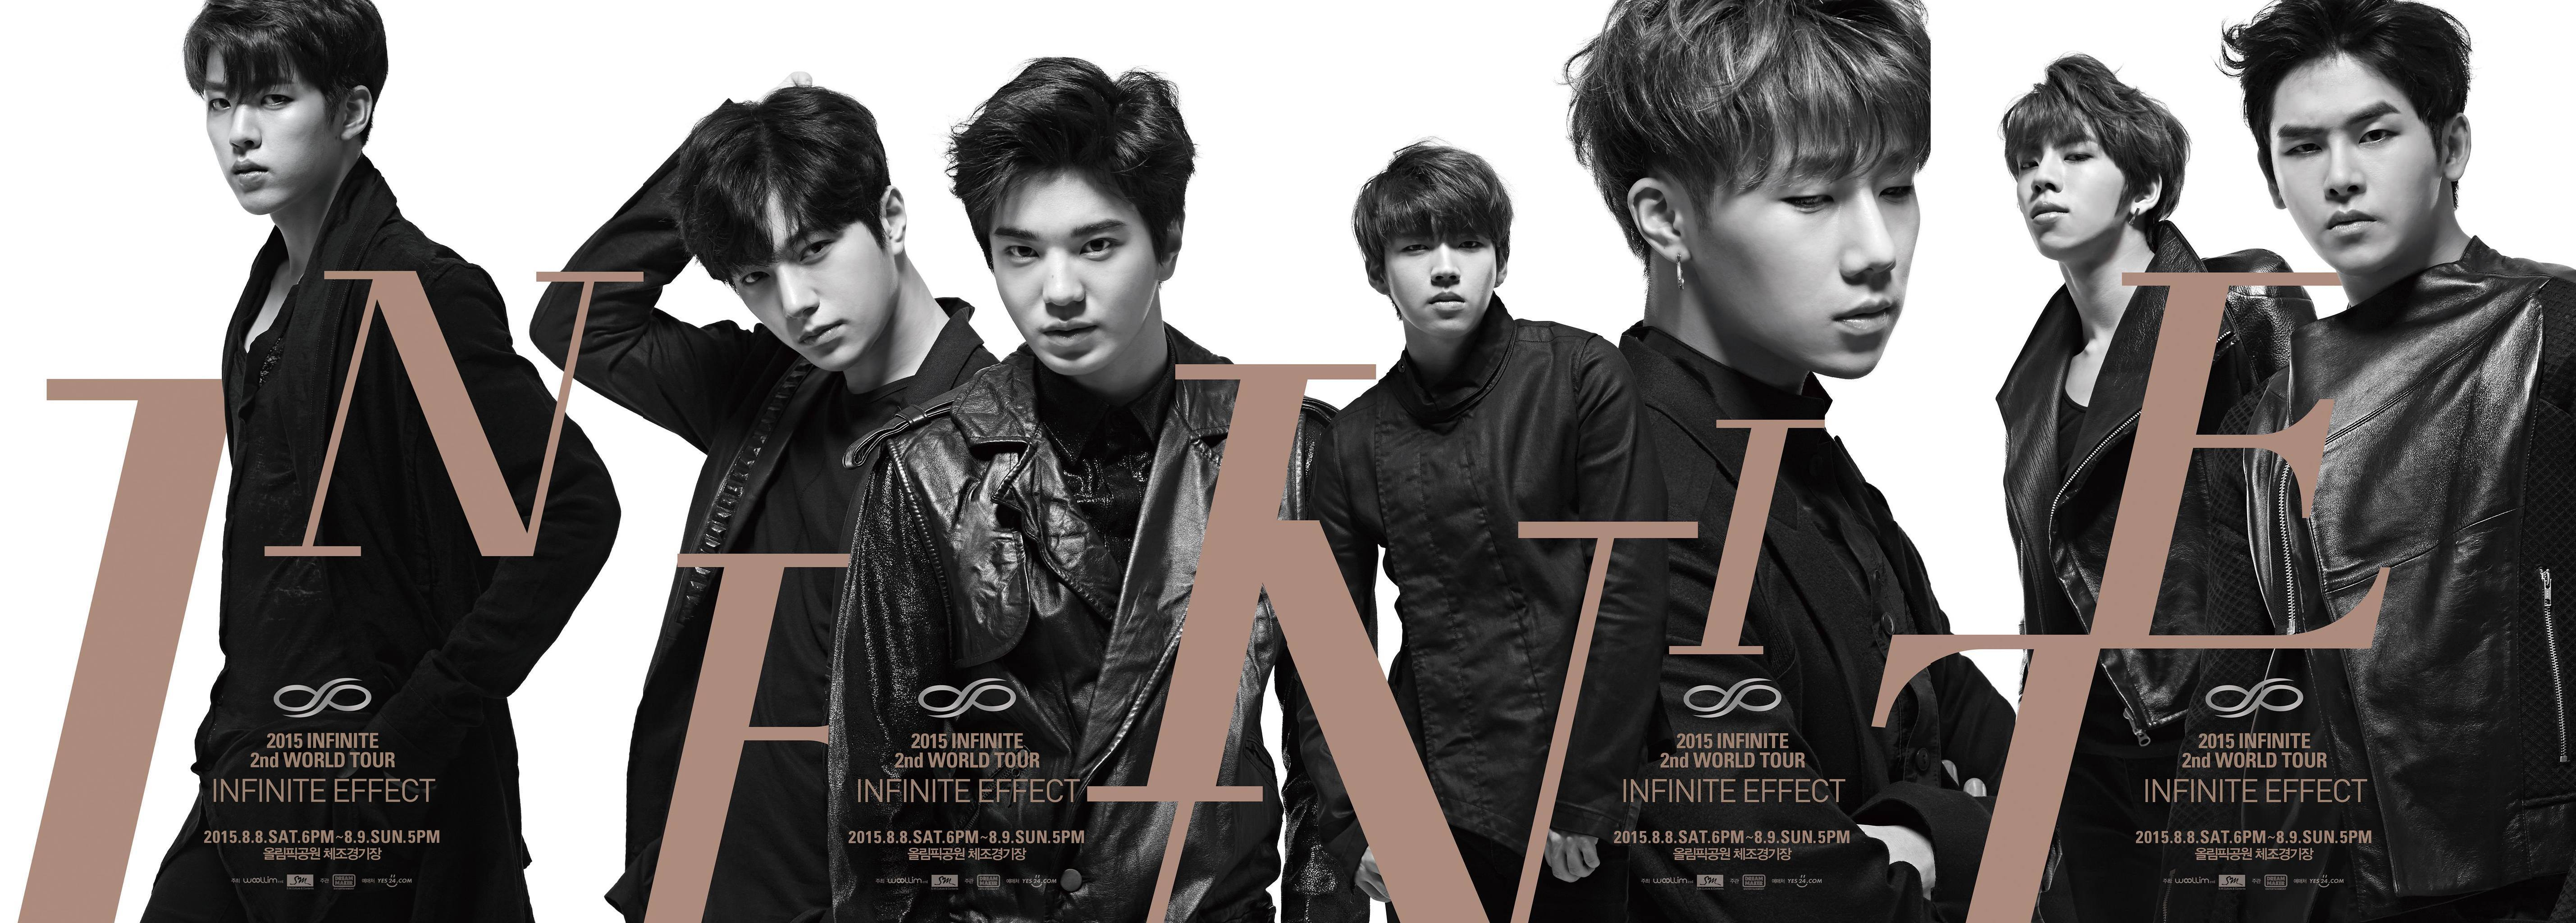 Infinite Second World Tour Songs